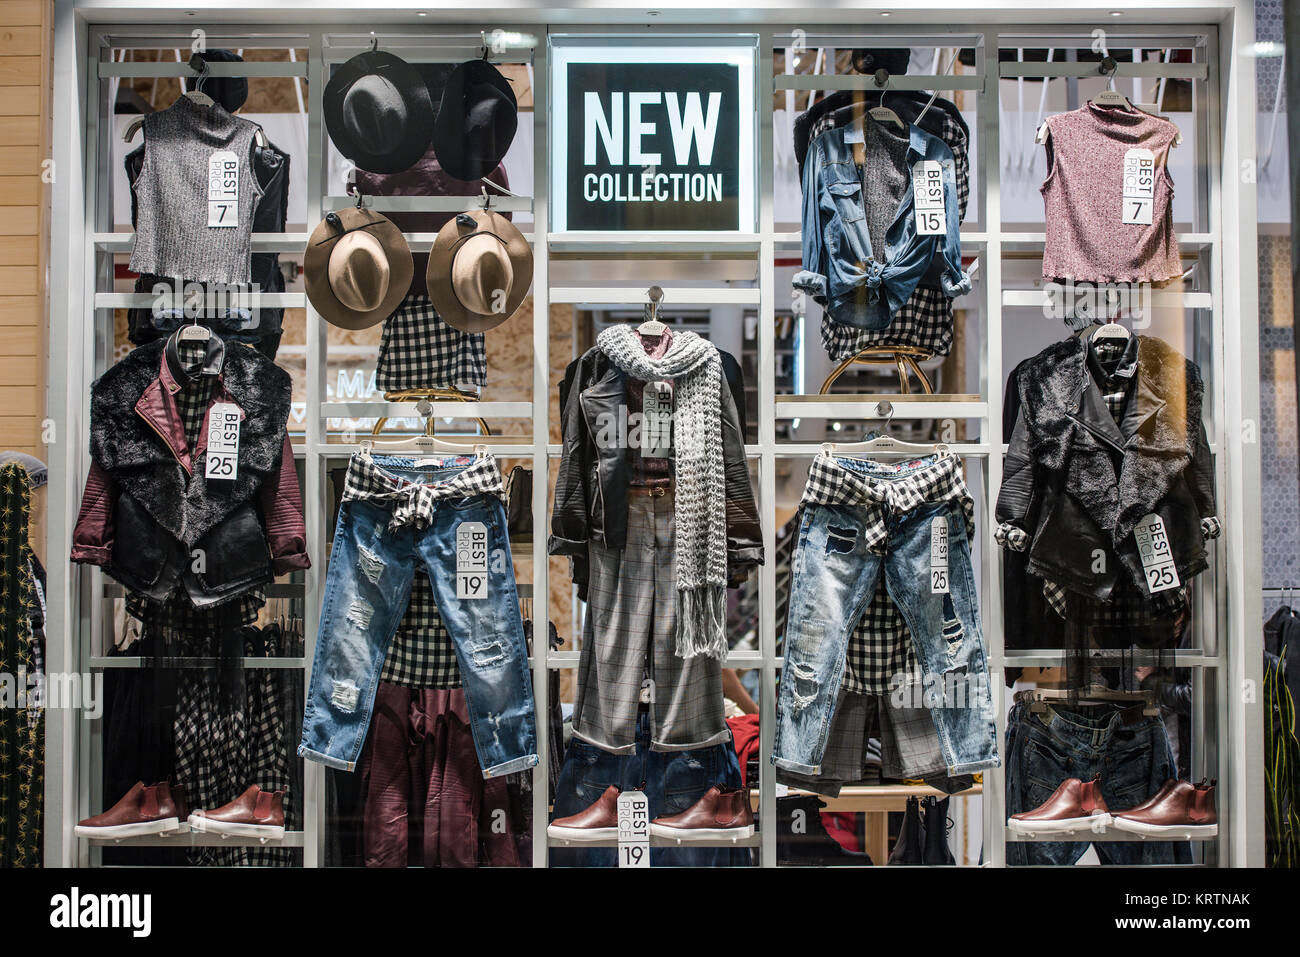 7a2a65ad Milan, Italy - November 10, 2016: Urban clothing in a store in Milan fashion  district.